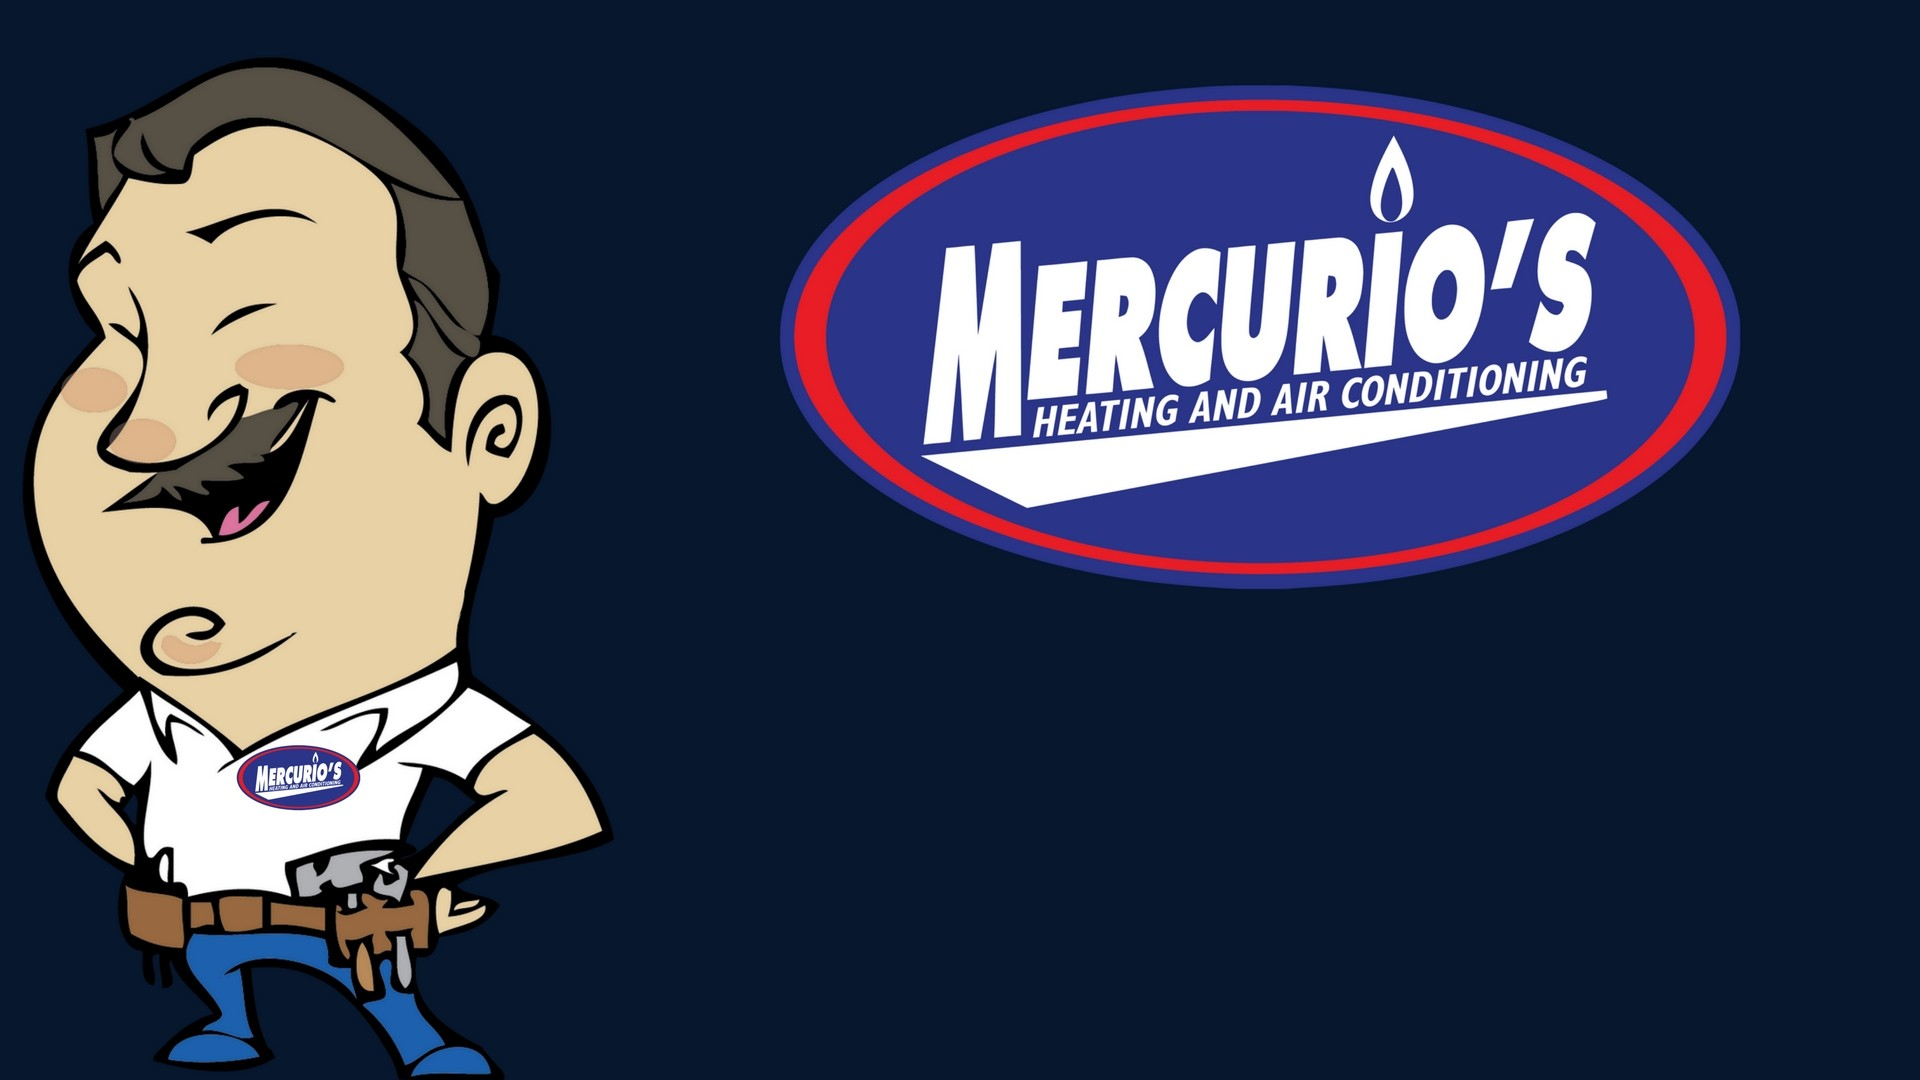 Mercurio S Heating And Air Conditioning Linkedin